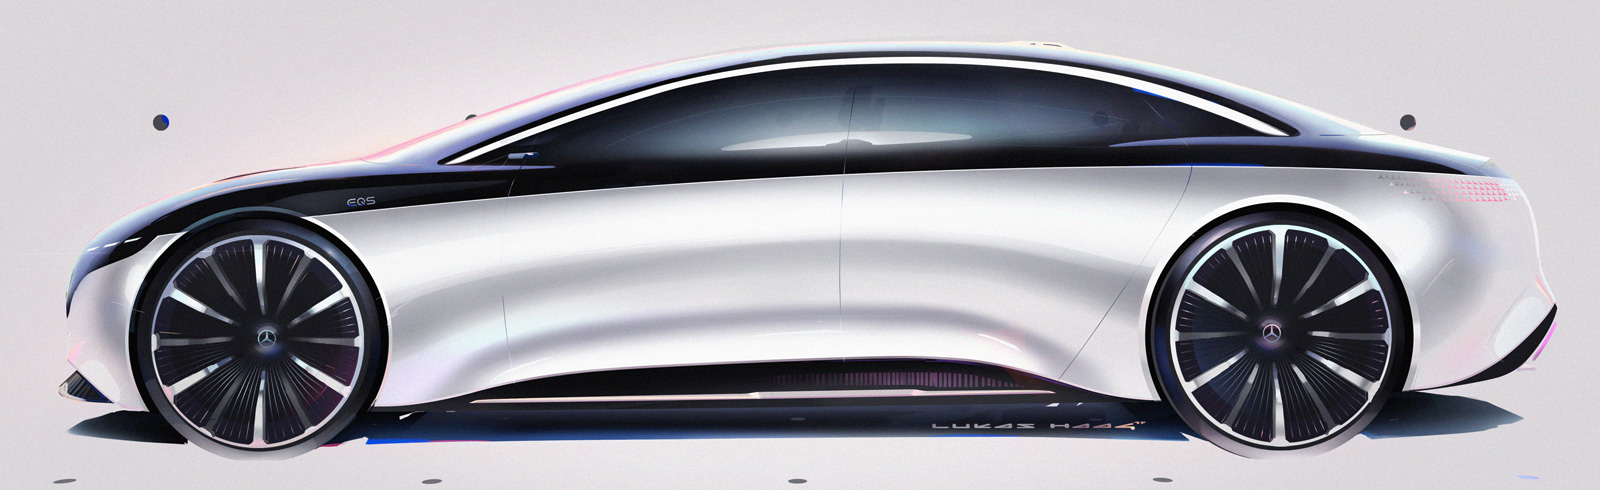 Mercedes-Benz EQS will offer a range of more than 700 km